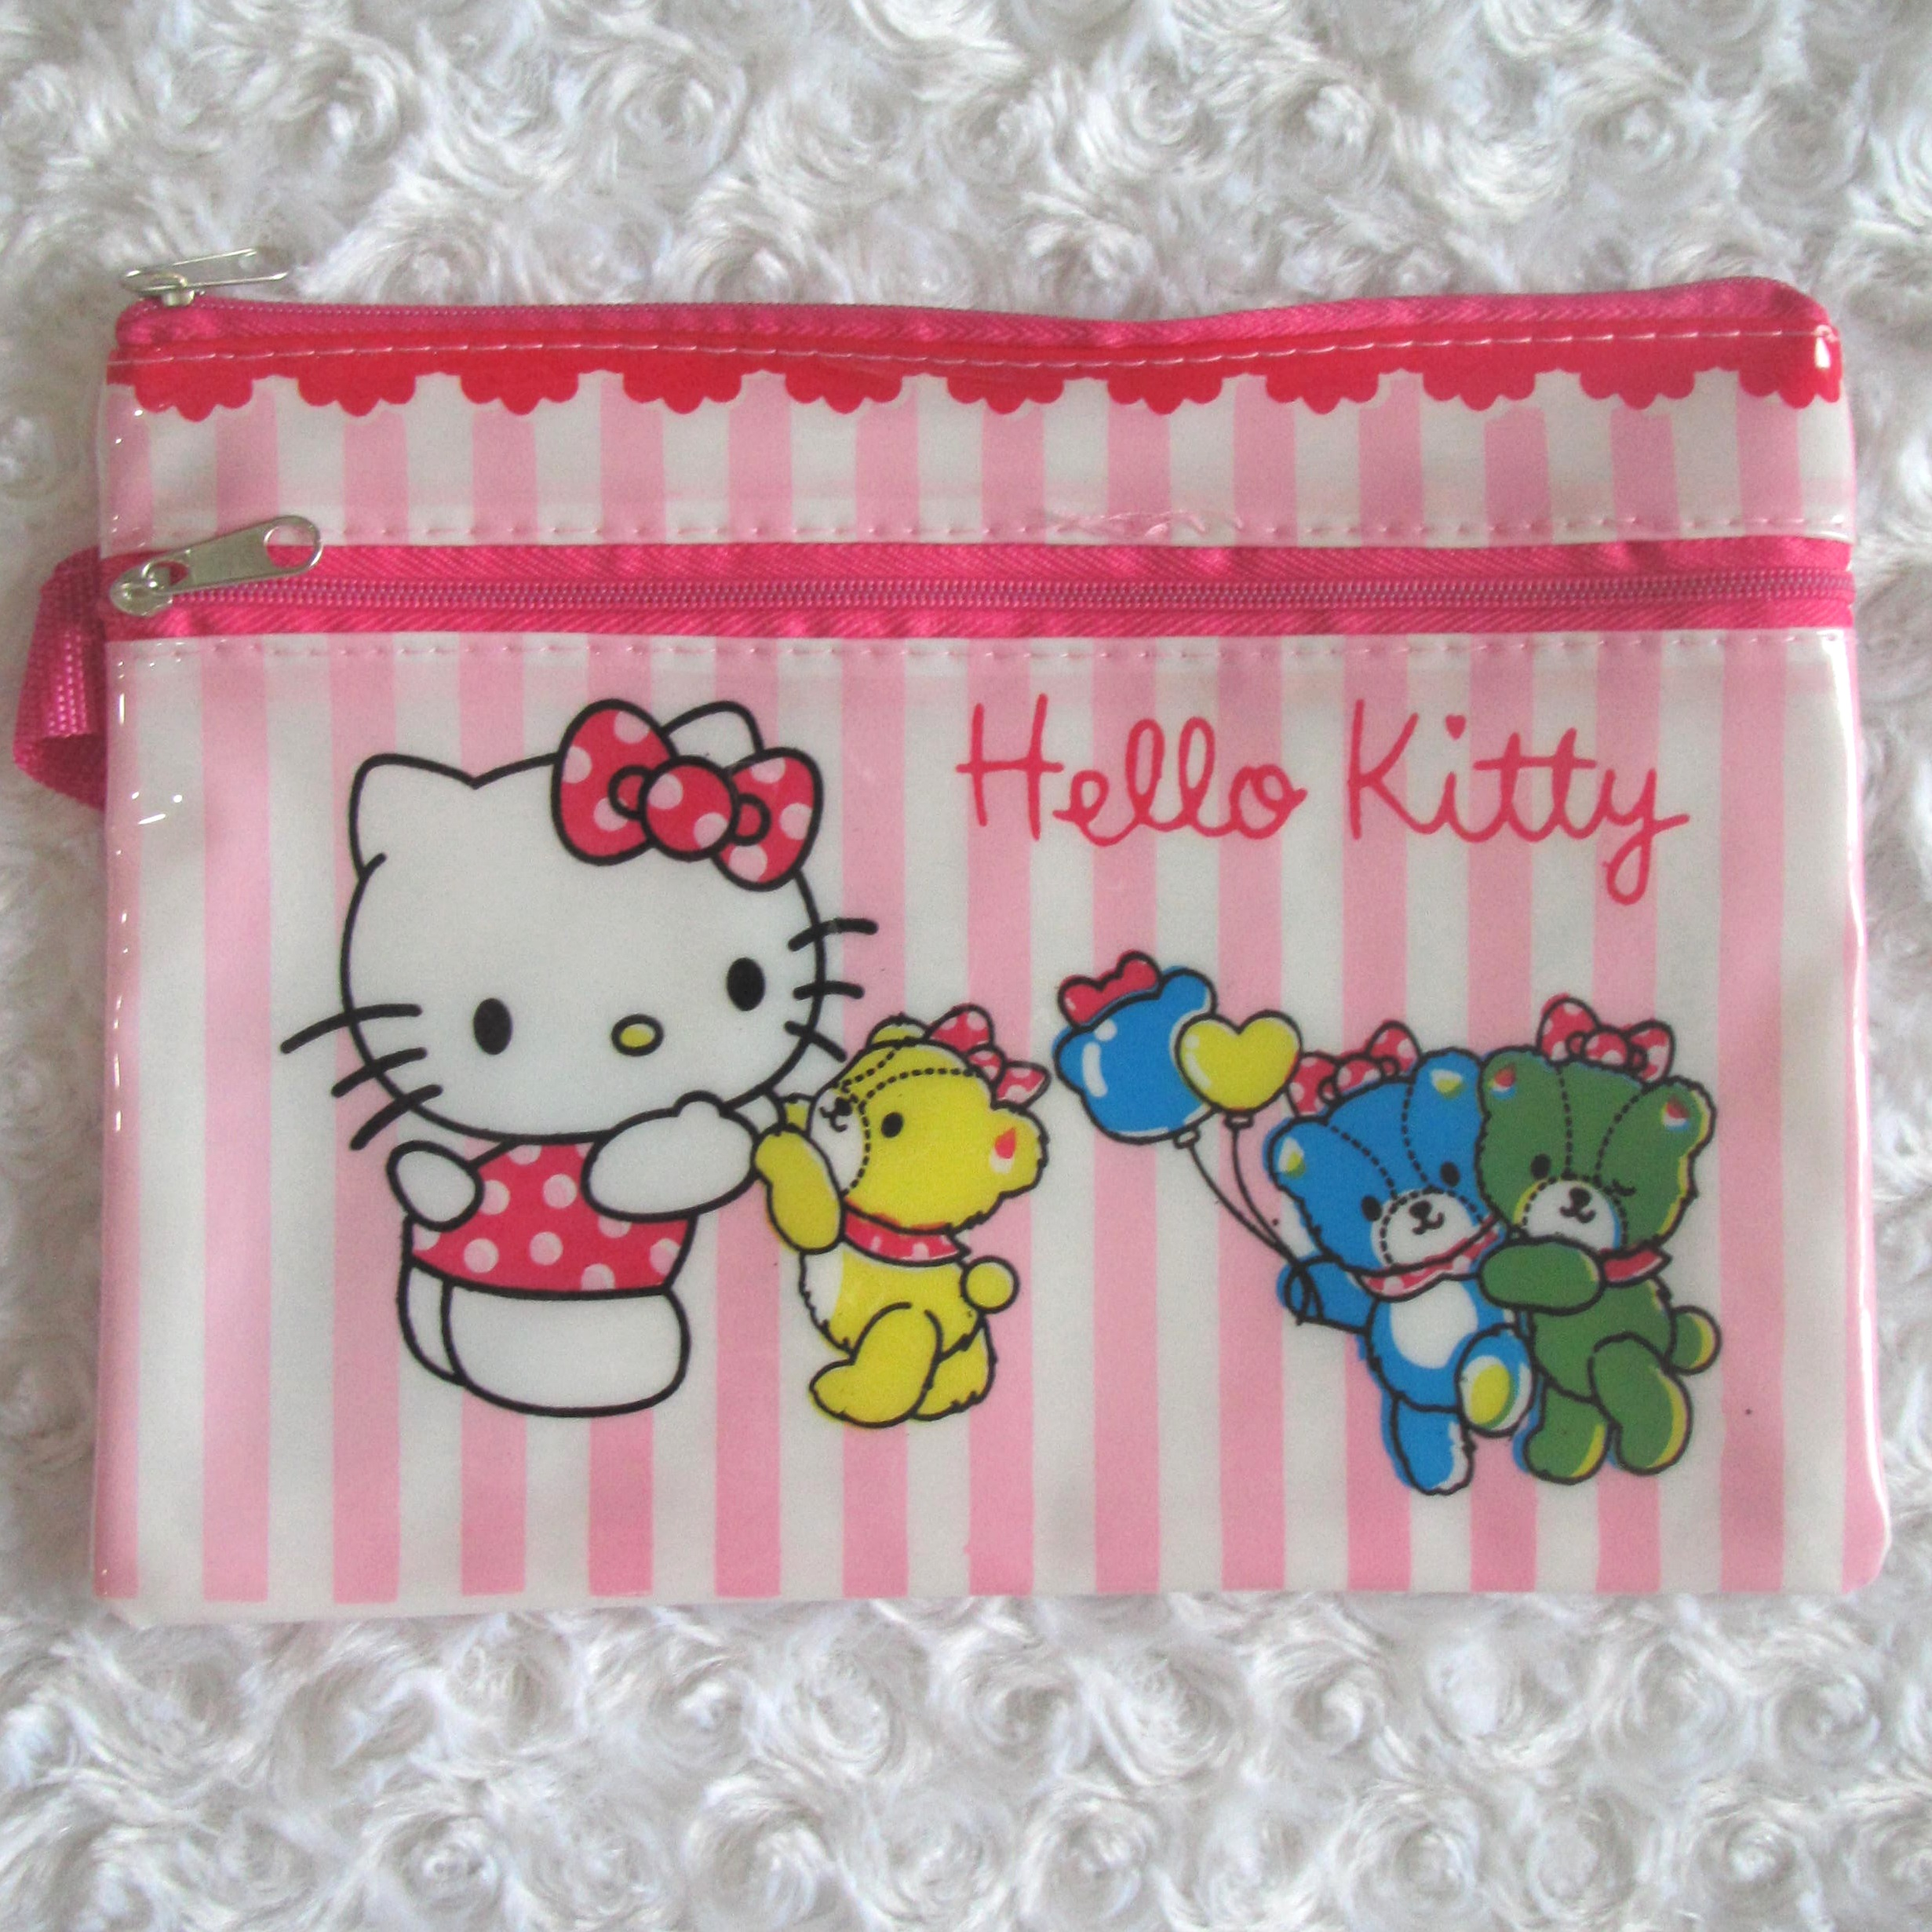 Serba Hello Kitty Jual Dompet Pouch Kosmetik Make Up Makeup Serba Guna Hk Hello